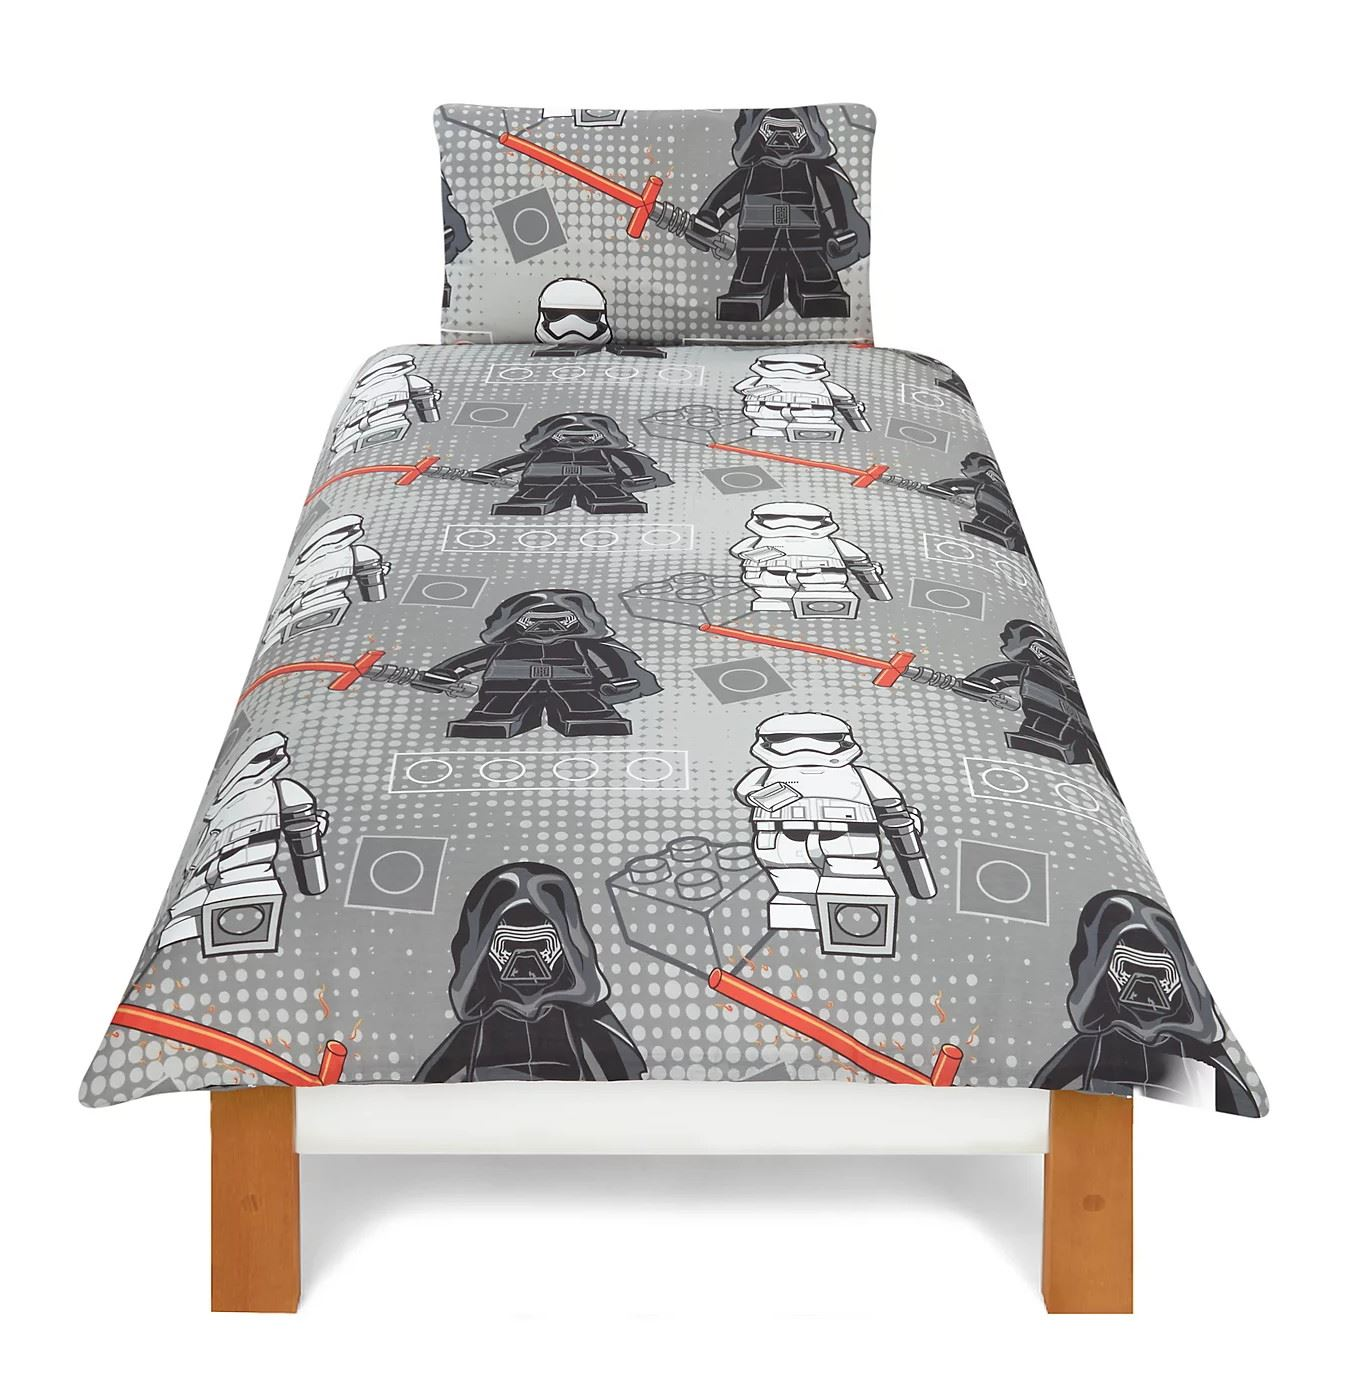 Official-Star-Wars-Licensed-Duvet-Covers-Single-Double-Jedi-Darth-Vader-Lego thumbnail 16